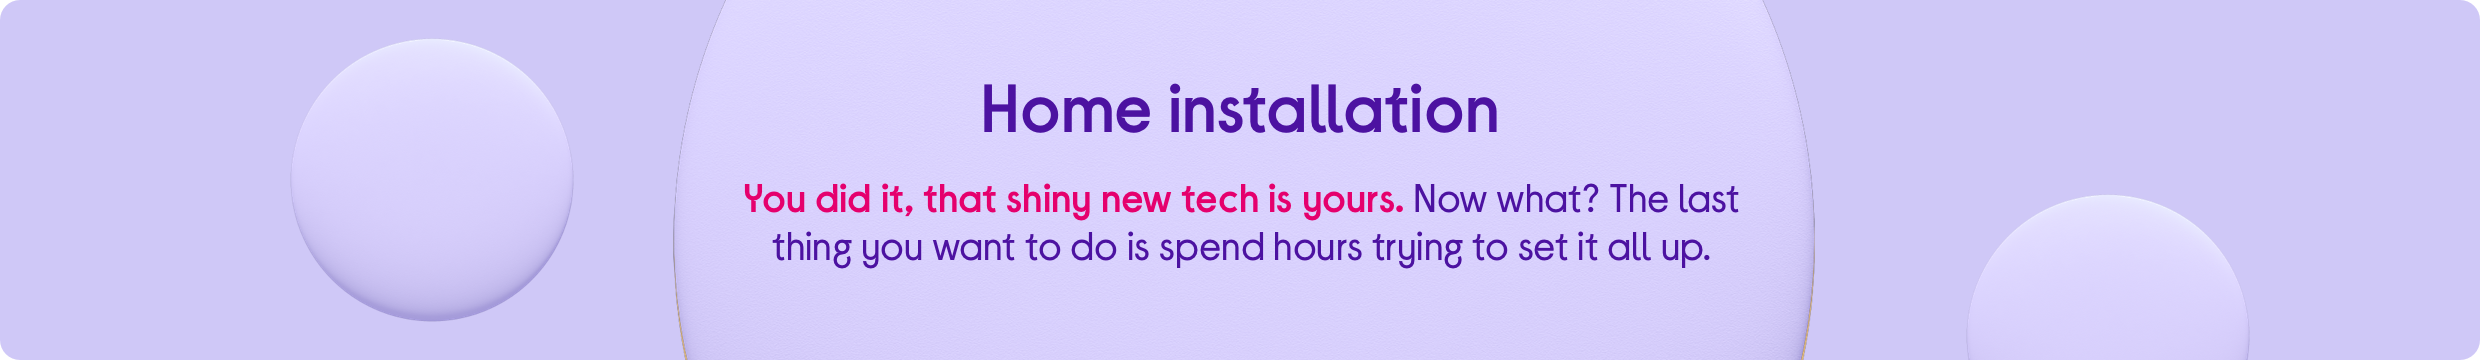 Home installation. You did it, that shiny new tech is yours. Now what? The last thing you want to do is spend hours setting it all up.